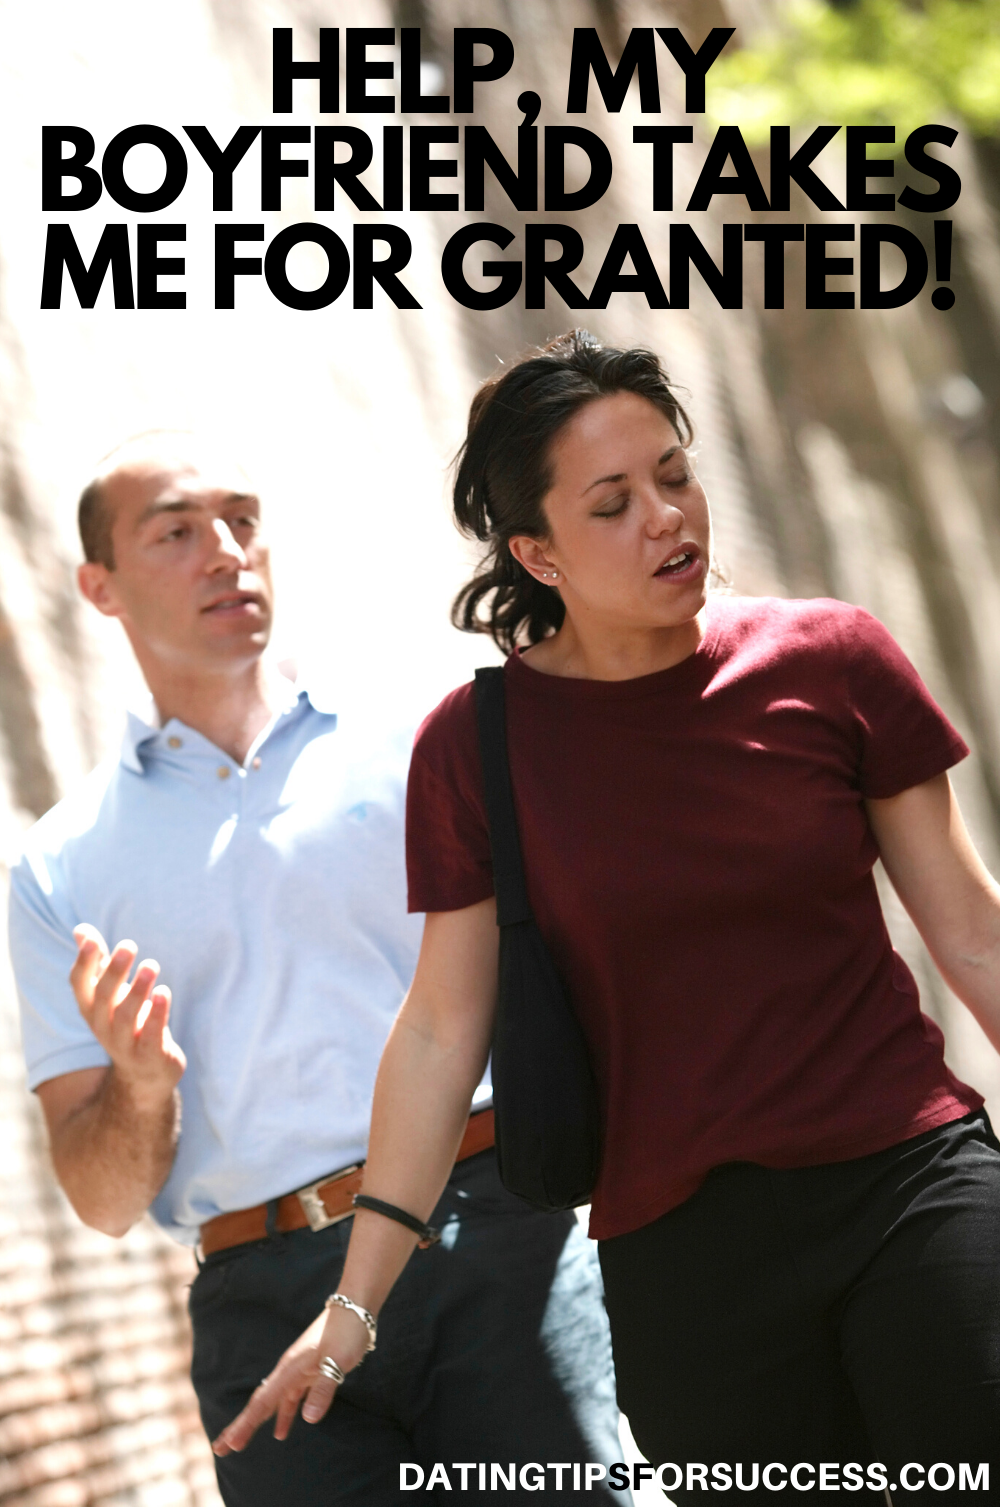 My Boyfriend Takes Me For Granted (6 Ways To Make It Stop